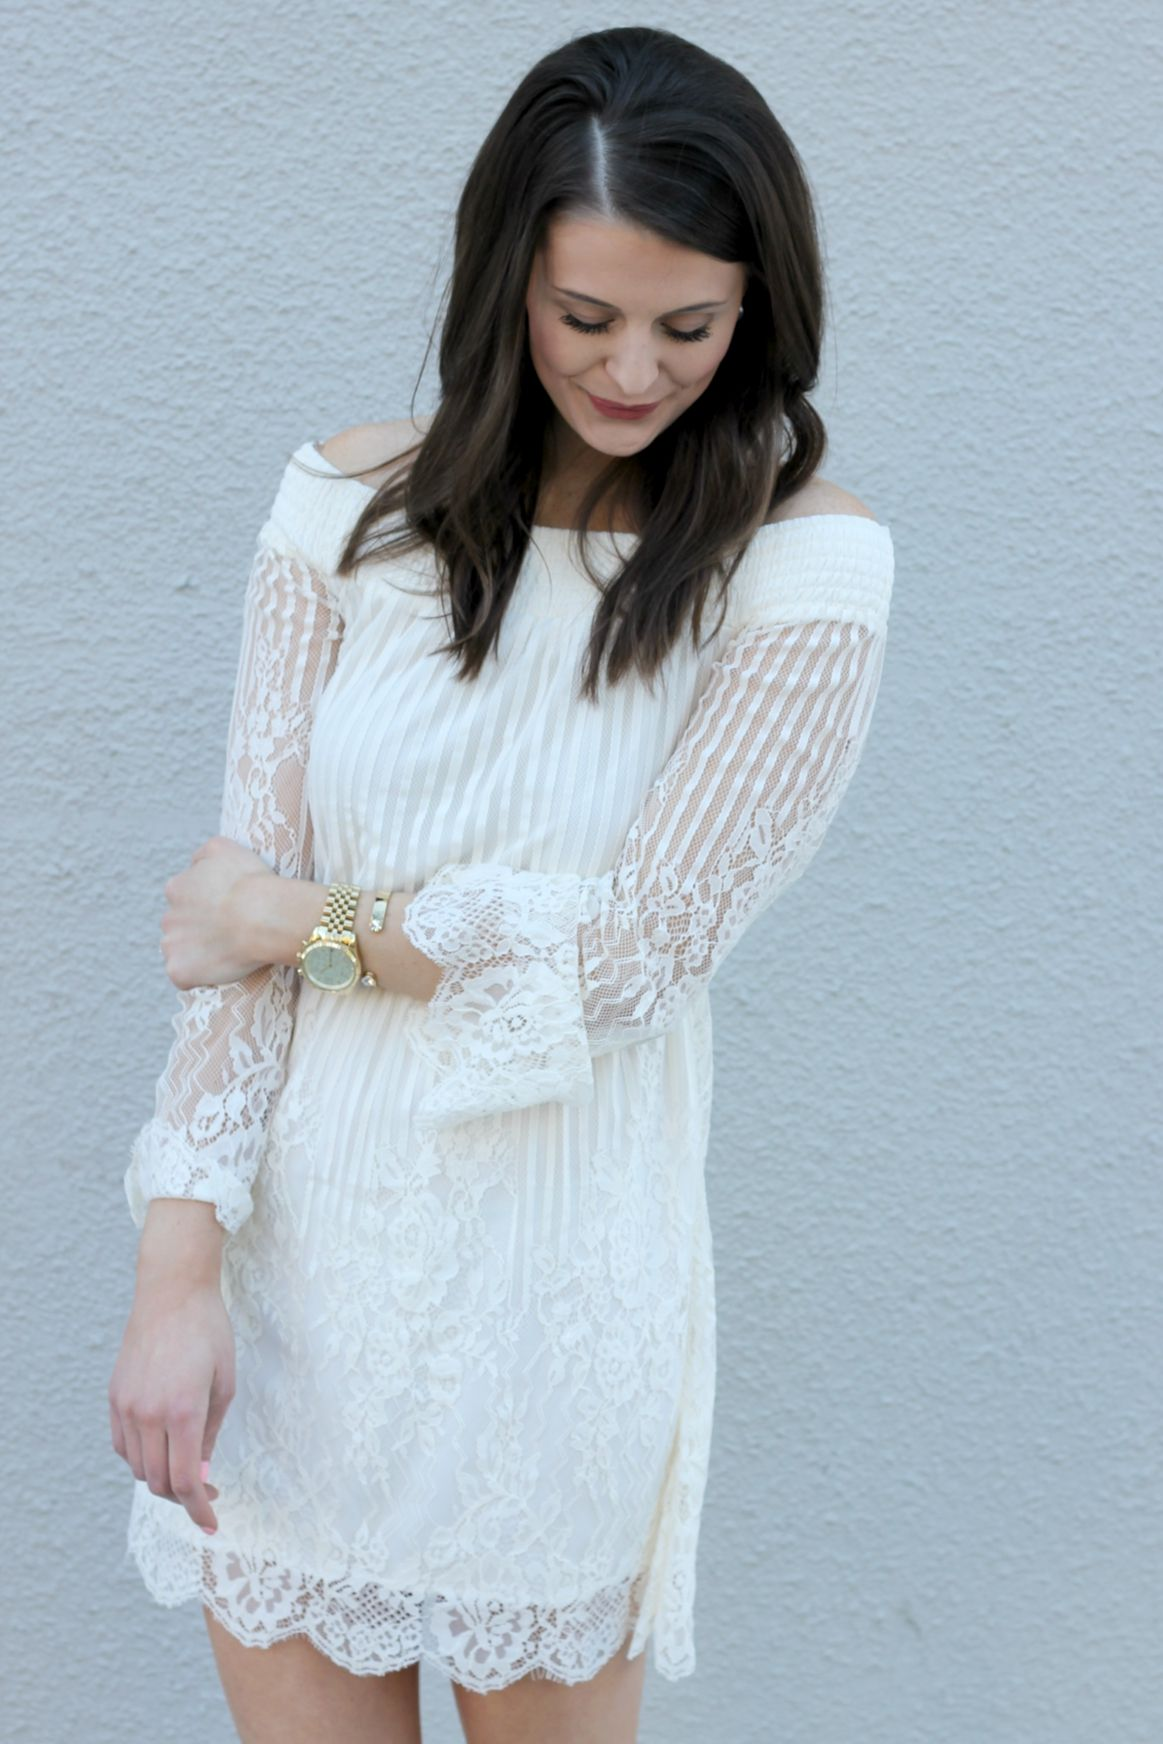 Rehersal dinner outfit idea - bridal shower outfit idea - stripe ...